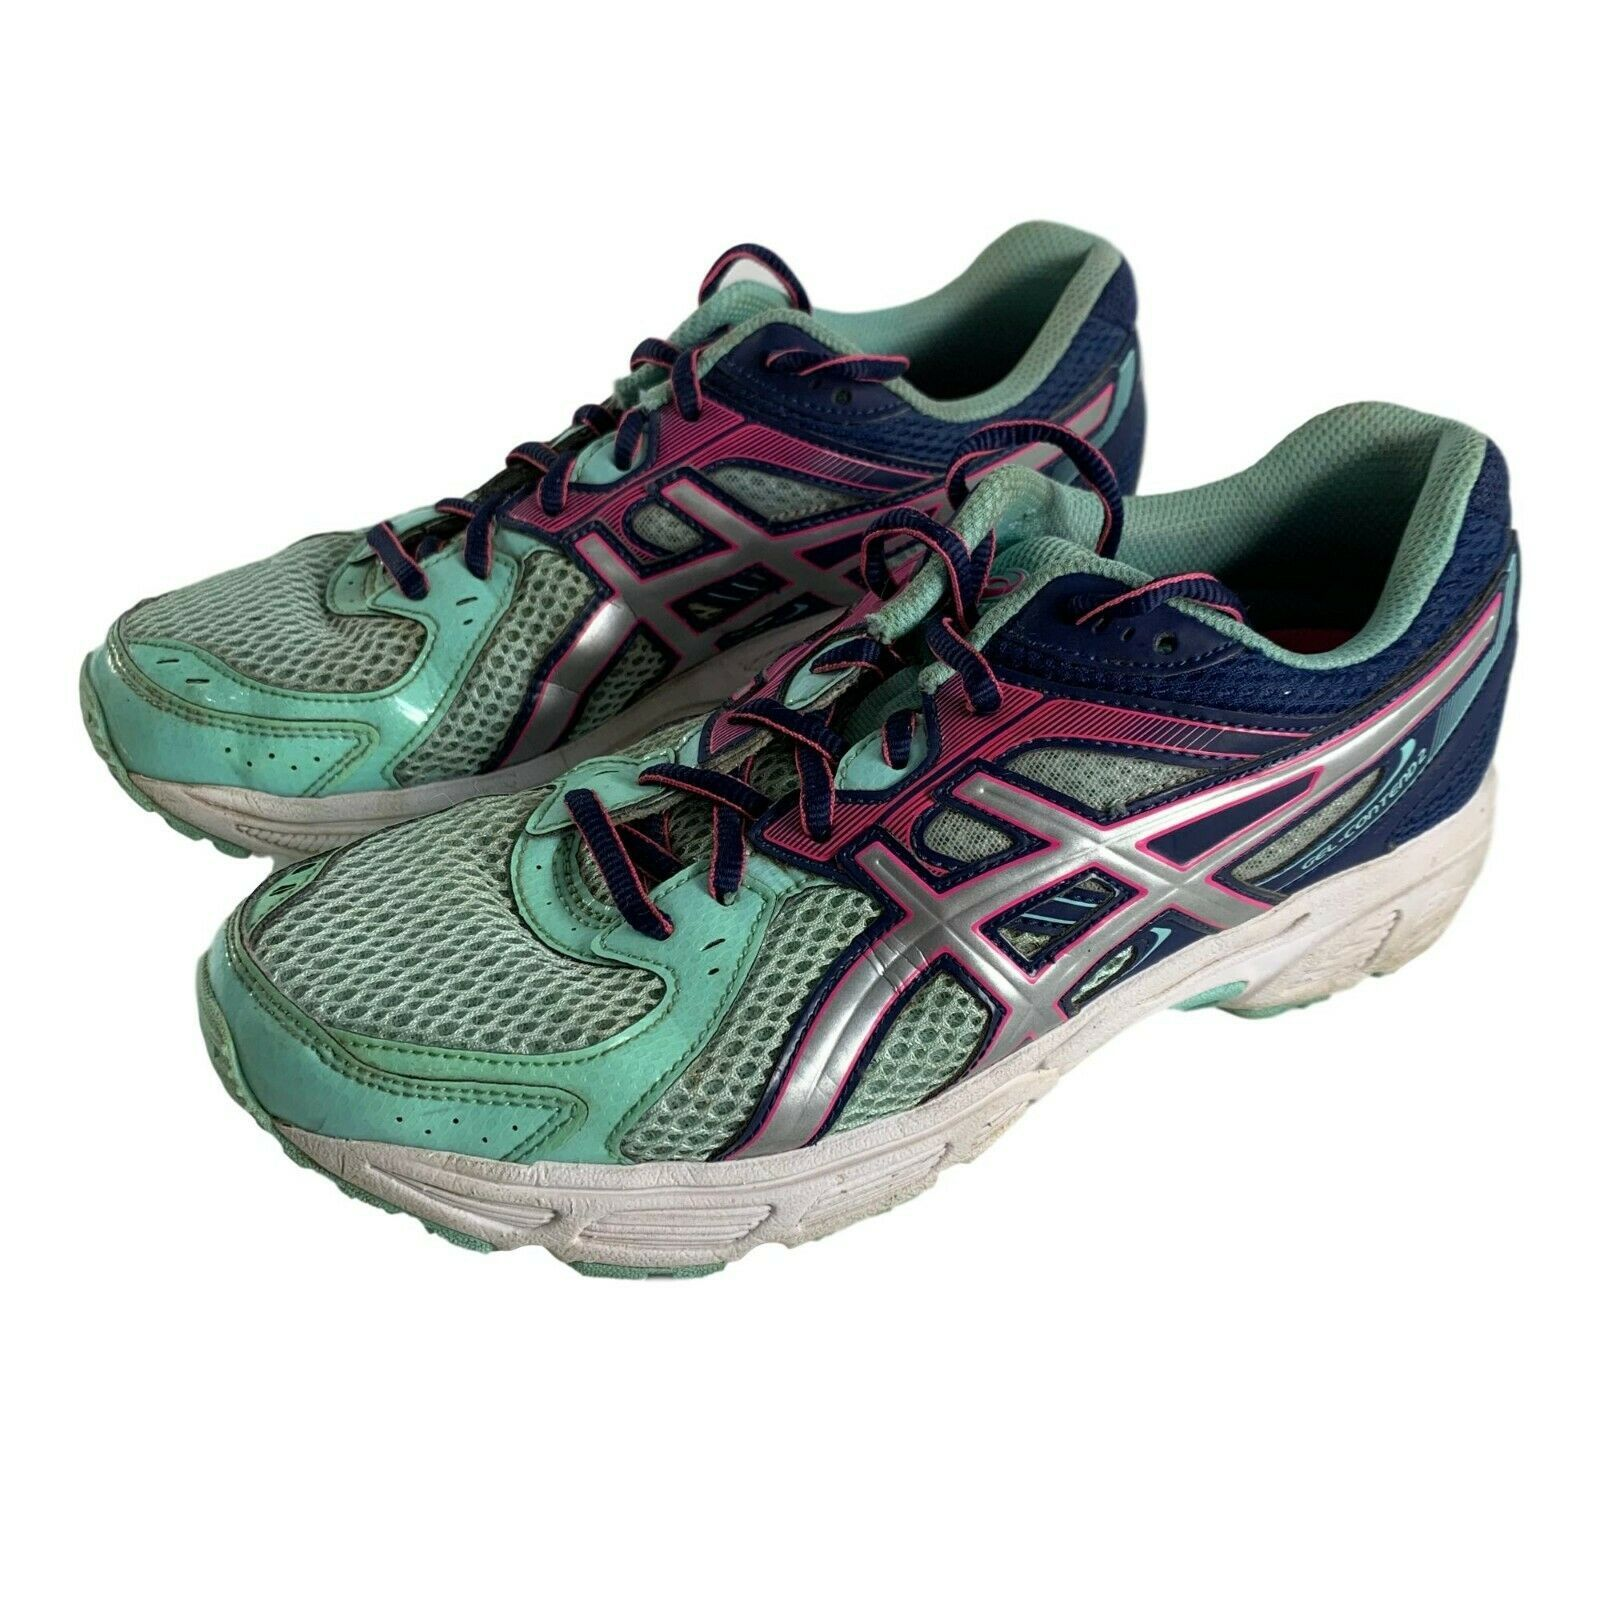 Primary image for ASICS T474N Womens Running Shoes Size 8.5 Gel Contend 2 Green Blue Pink Sneakers